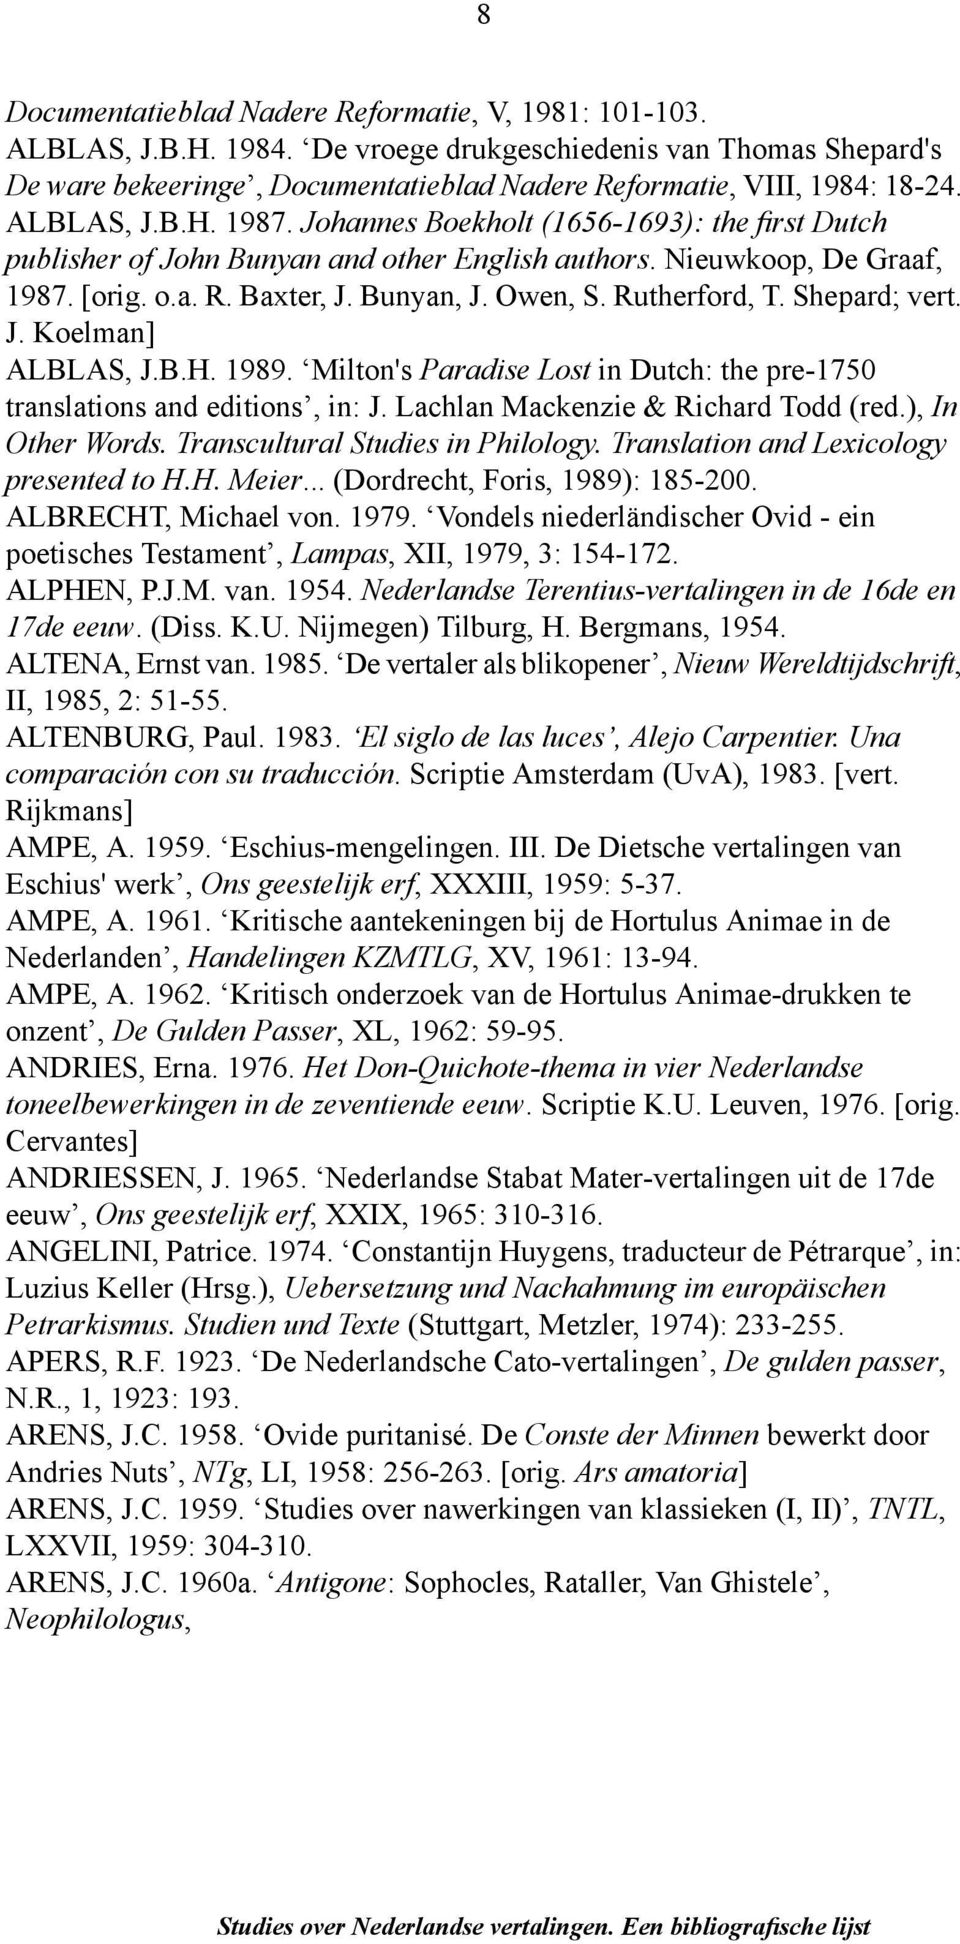 Rutherford, T. Shepard; vert. J. Koelman] ALBLAS, J.B.H. 1989. Milton's Paradise Lost in Dutch: the pre-1750 translations and editions, in: J. Lachlan Mackenzie & Richard Todd (red.), In Other Words.